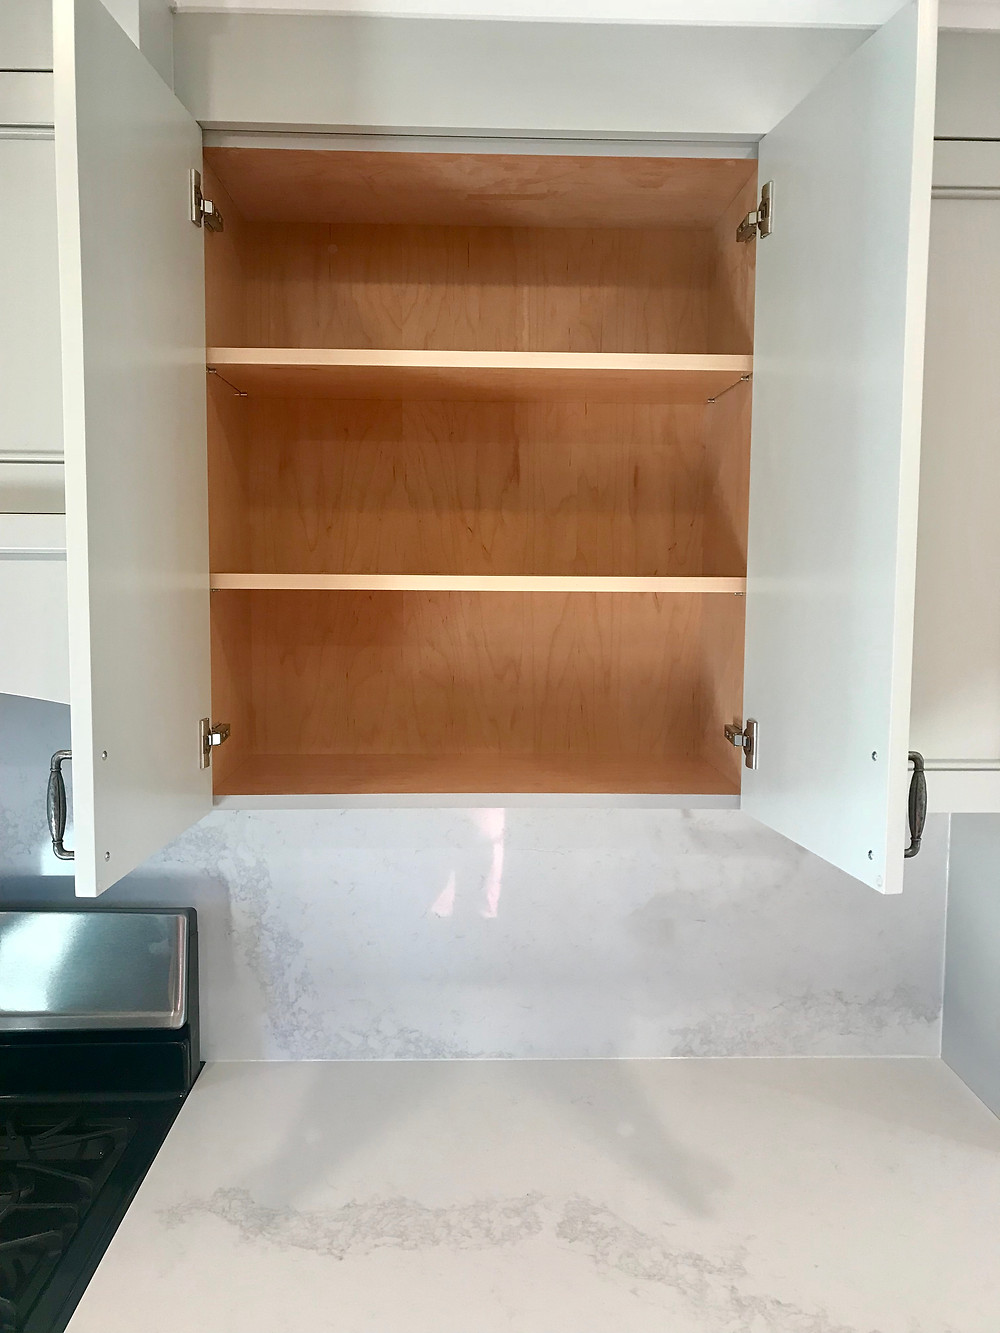 high-end custom kitchen cabinets  made of  maple plywood for life